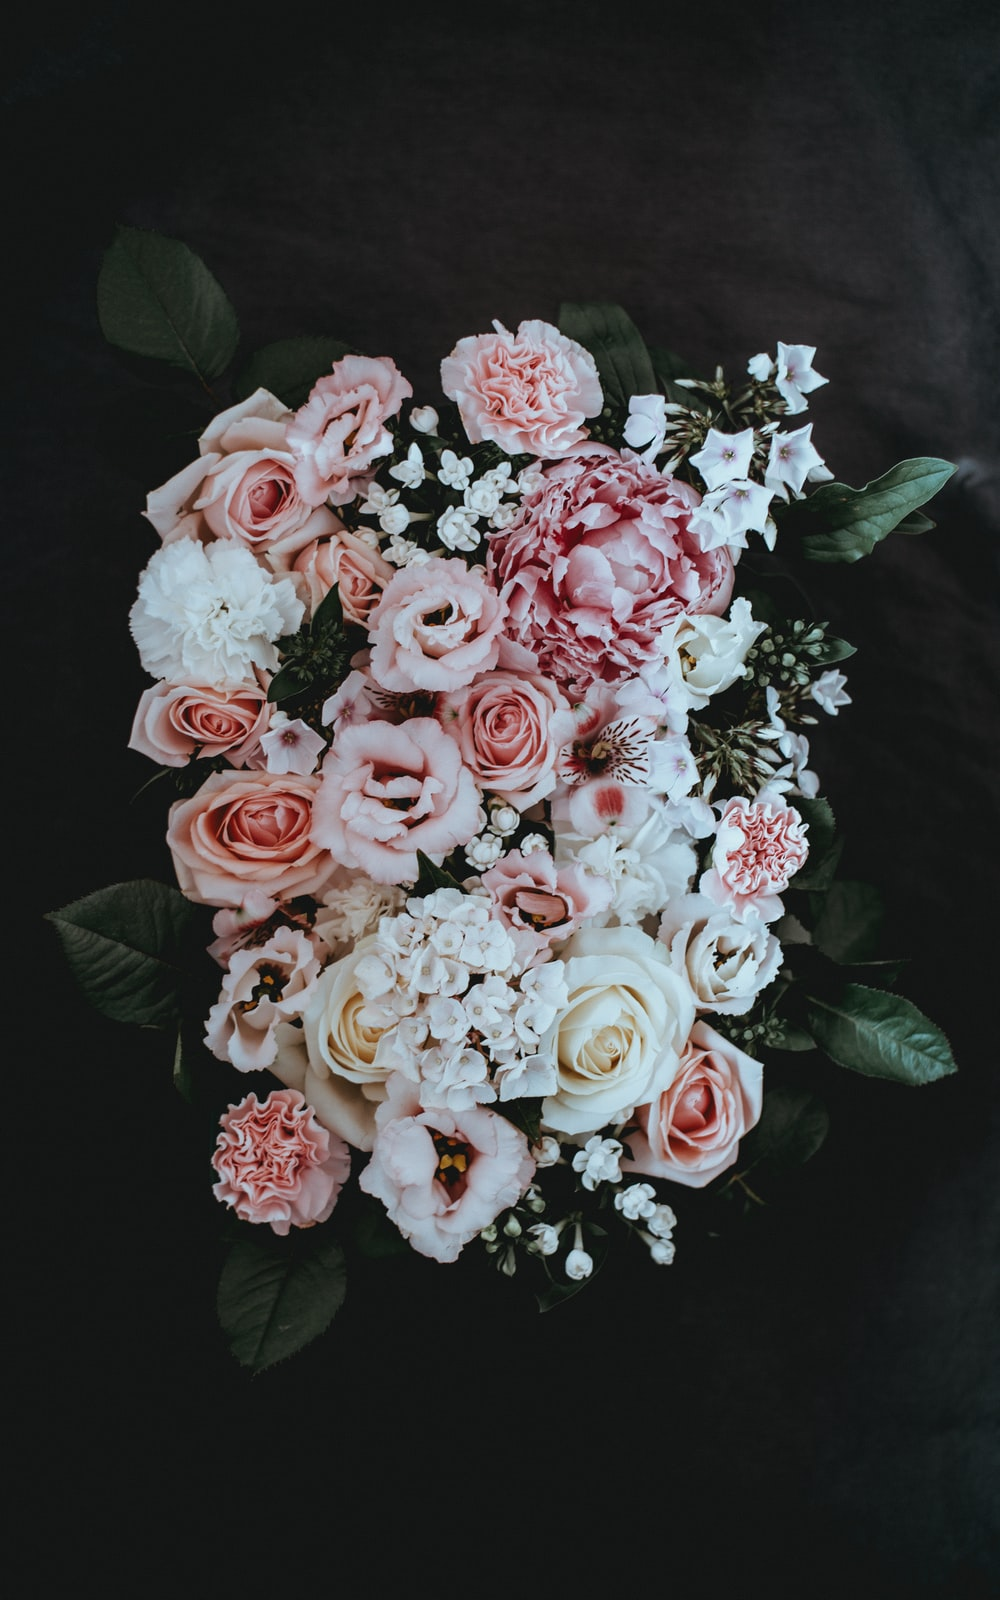 Bouquet of flower pictures download free images on unsplash white and pink petaled flower arrangement izmirmasajfo